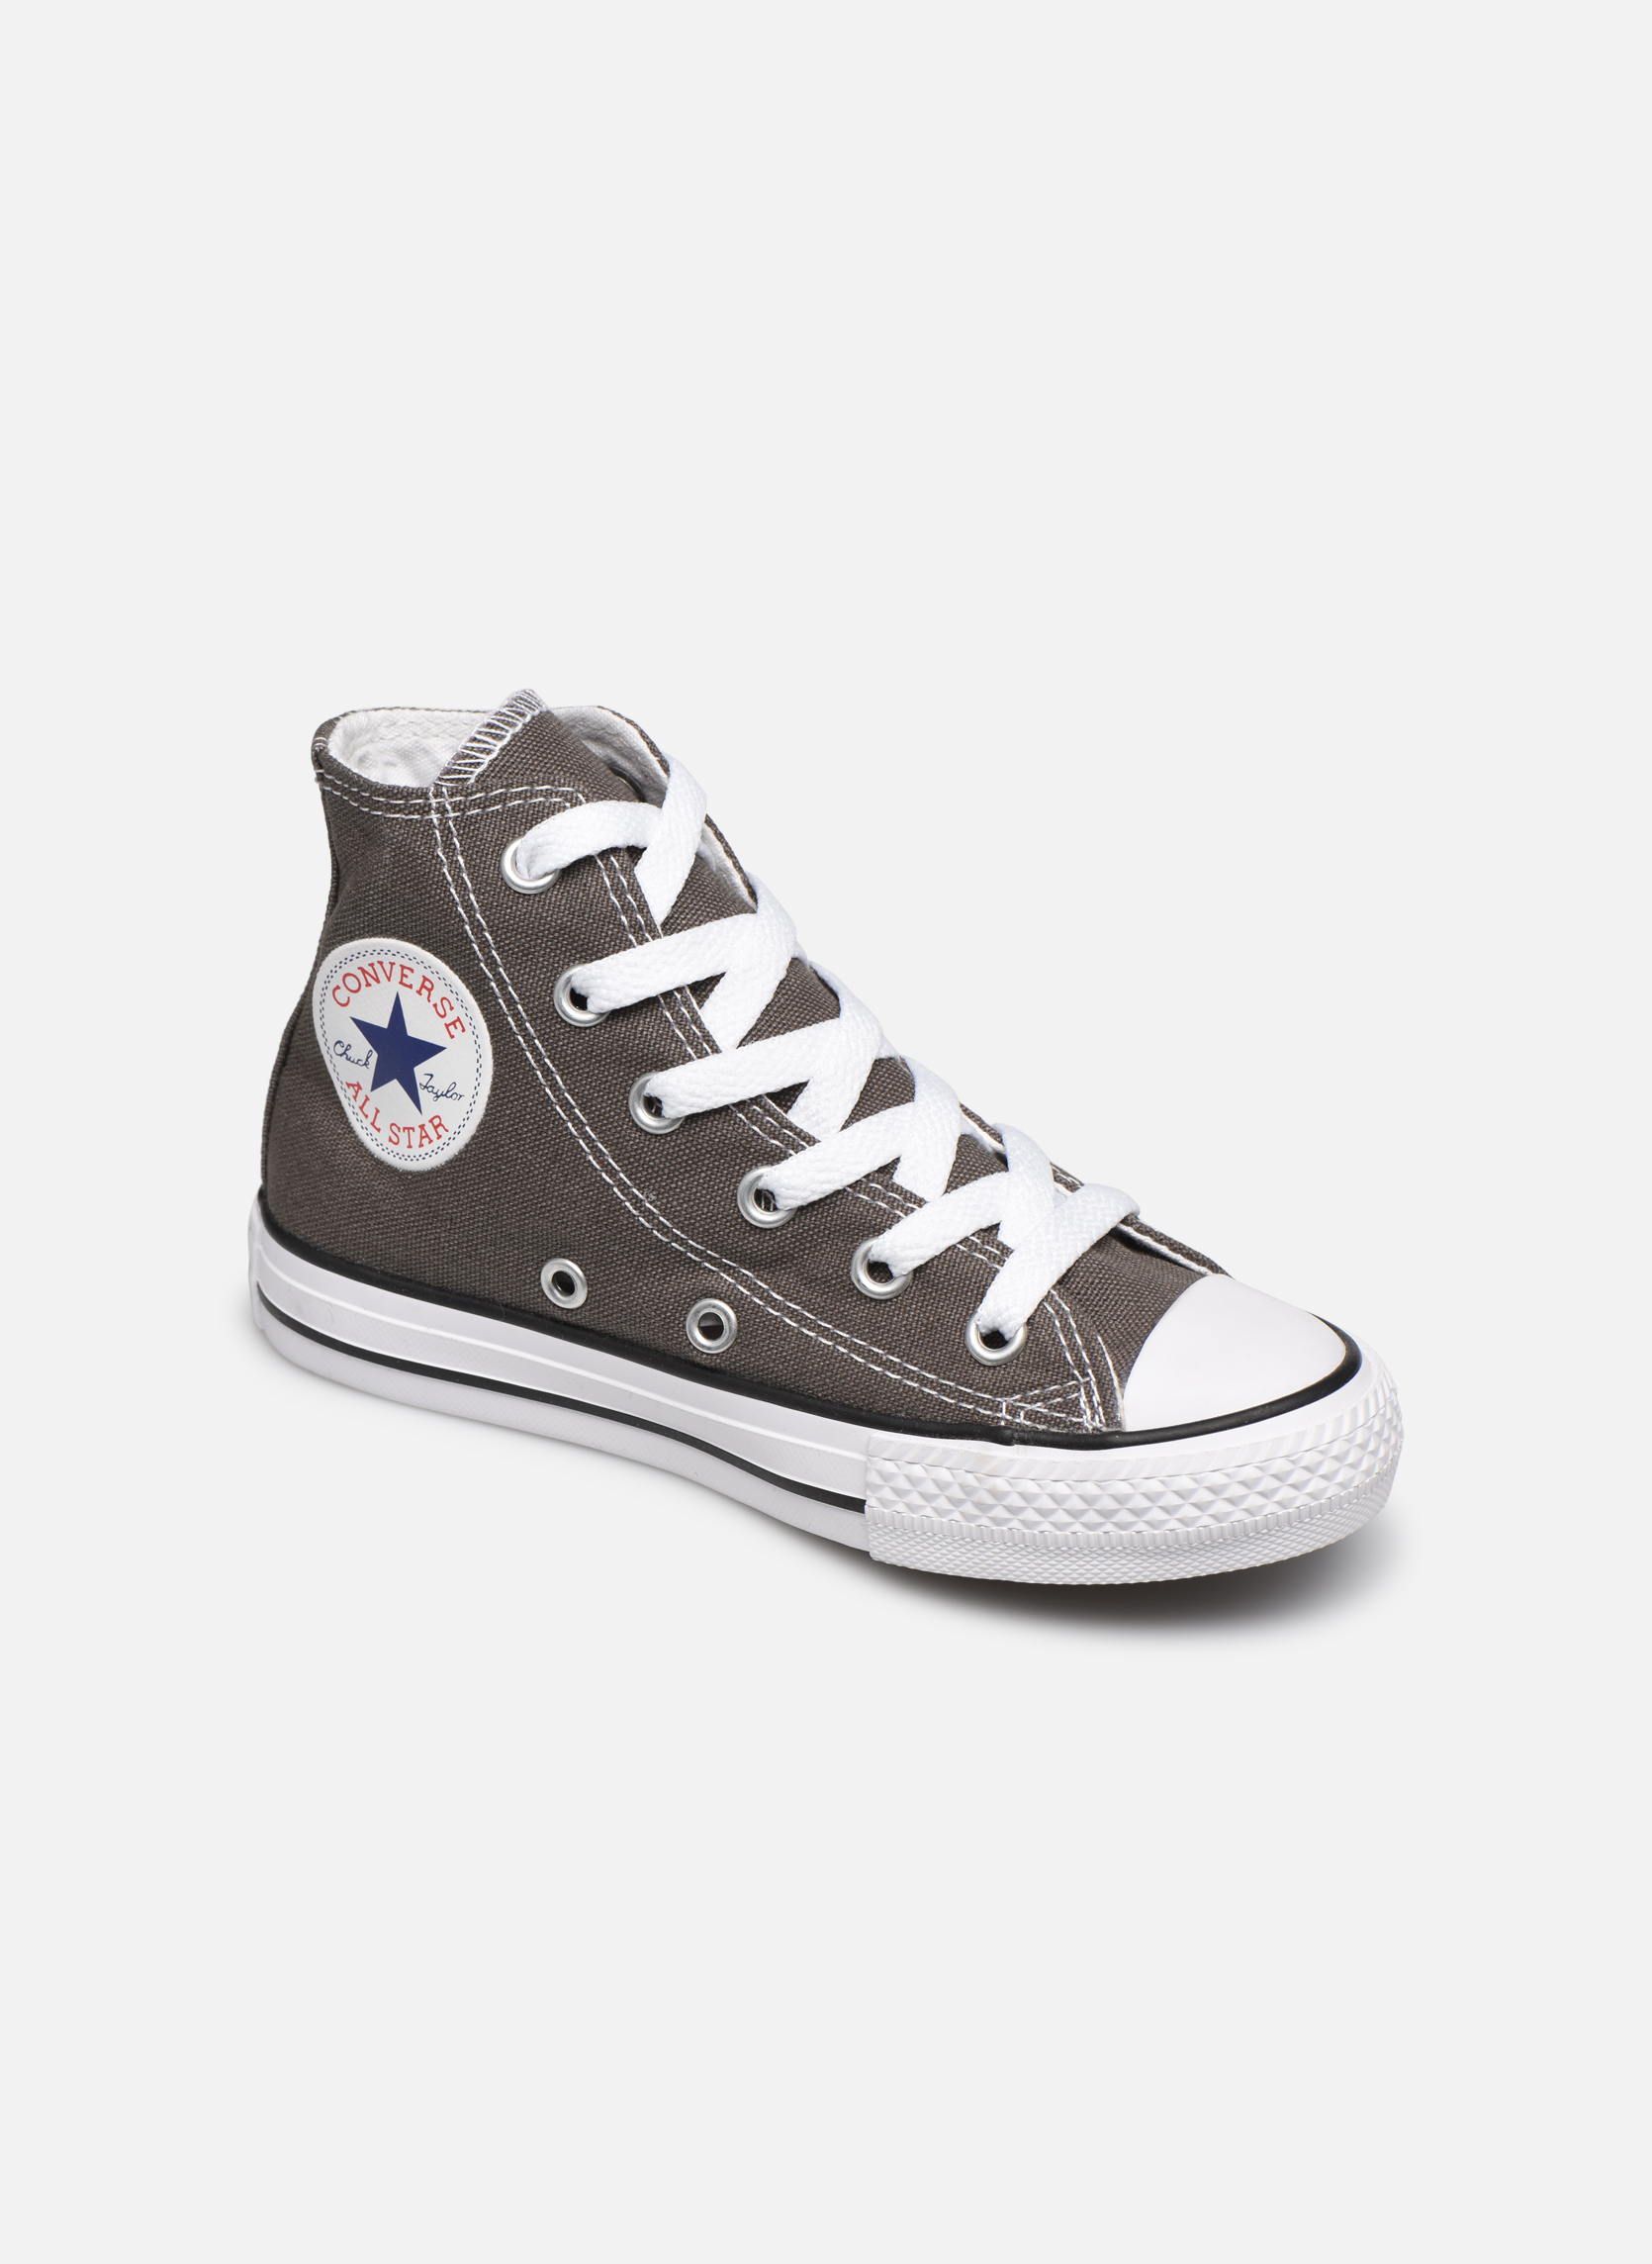 Baskets Enfant Chuck Taylor All Star Sp Hi